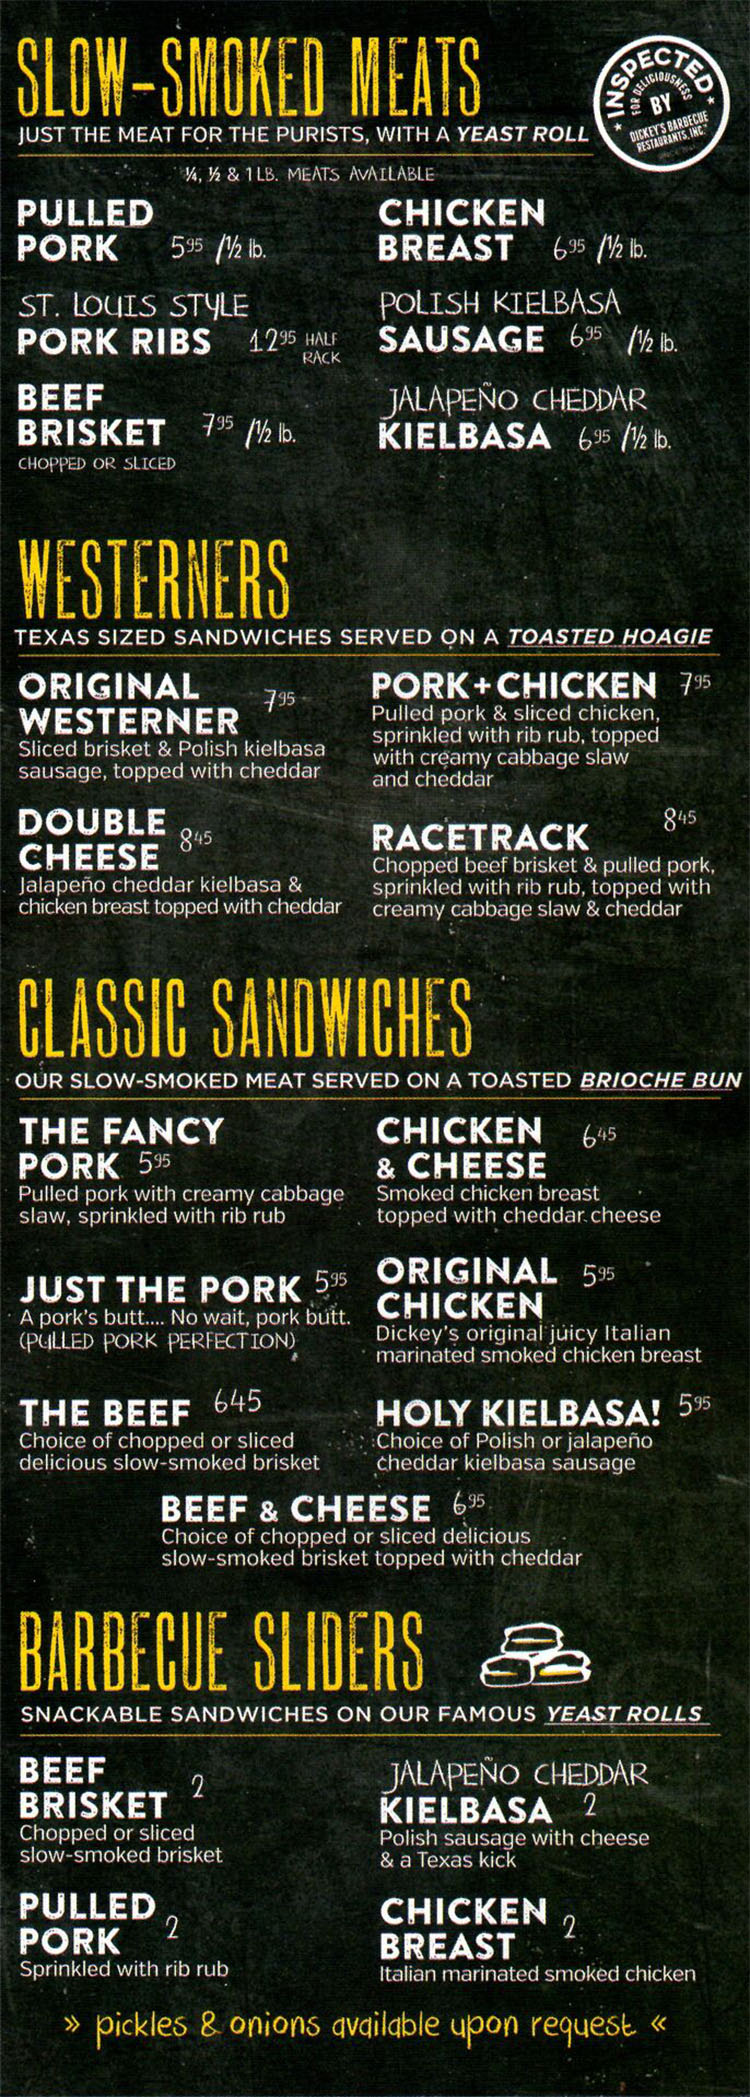 Dickey's Barbecue Pit SLC menu - BBQ meats, sandwiches, sliders